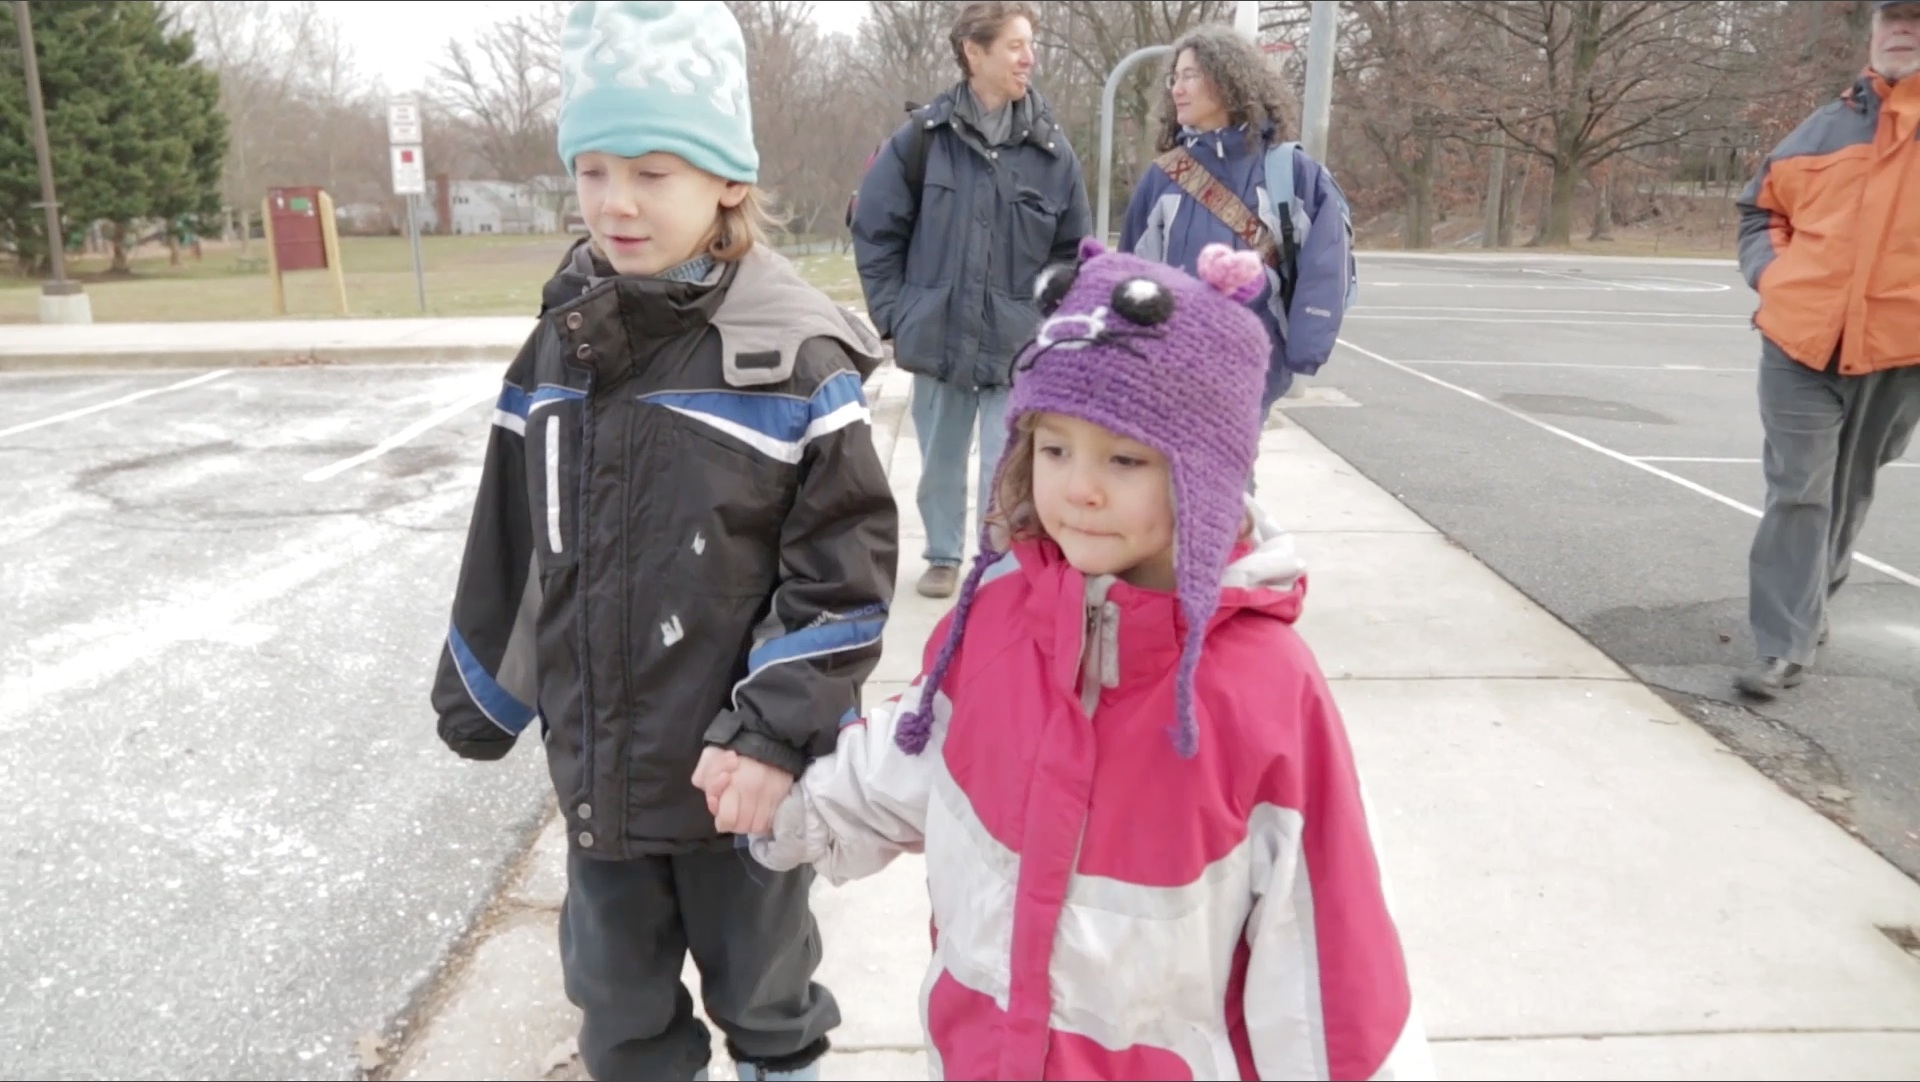 Parents investigated for neglect after letting kids walk home alone